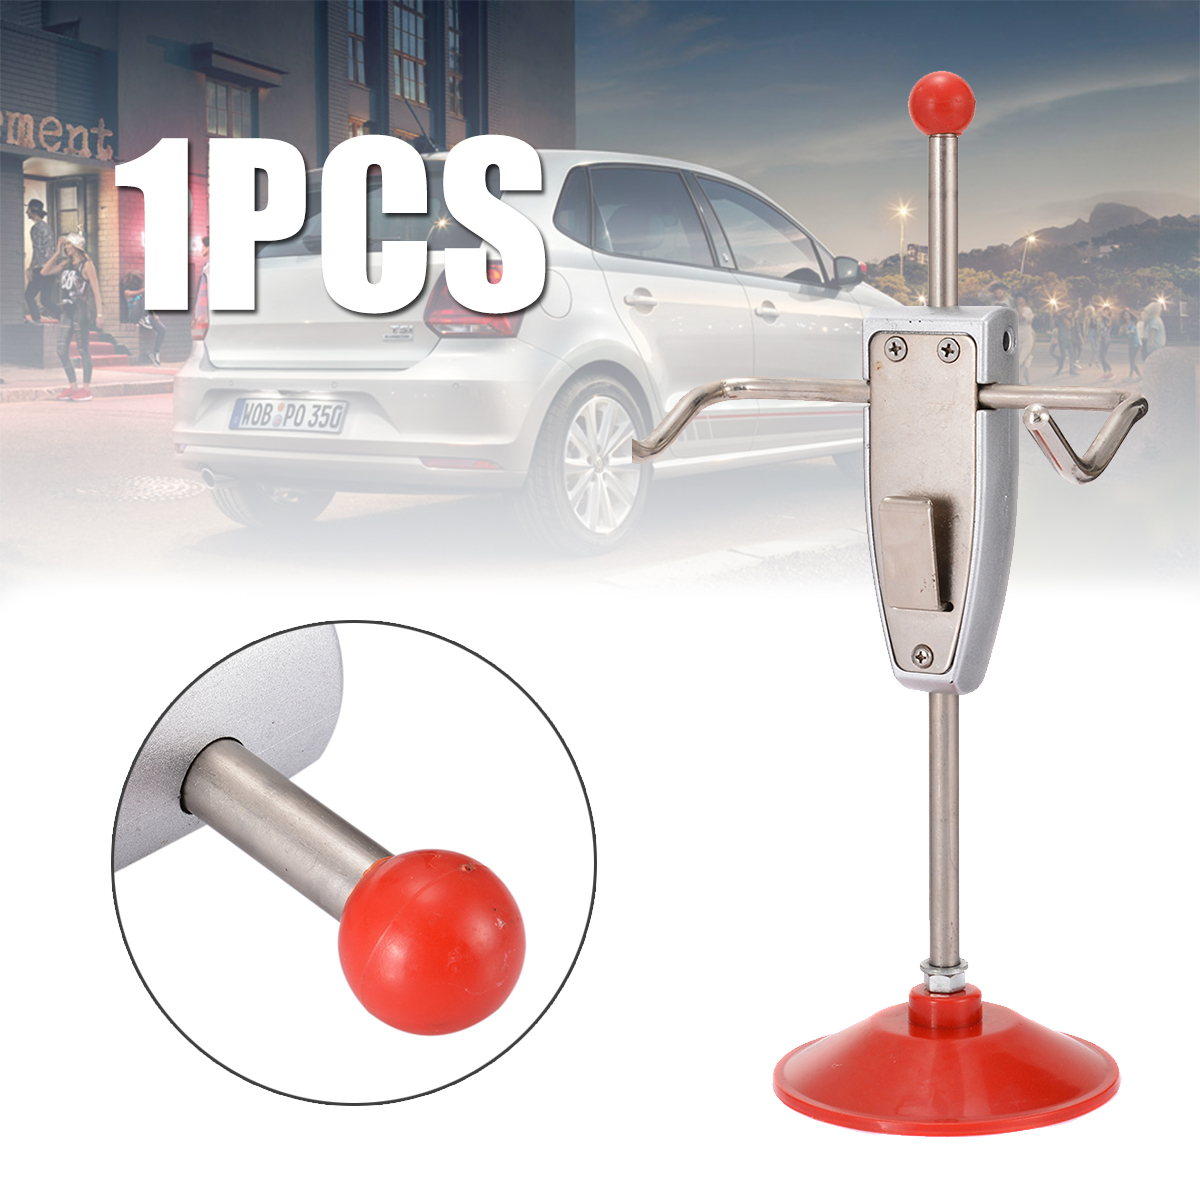 1pc 14.5/368mm Car Steering Wheel Locator Holder Stand Wheel Alignment Rack Tool Vehicle Truck Interior Iron + Plastic Tools